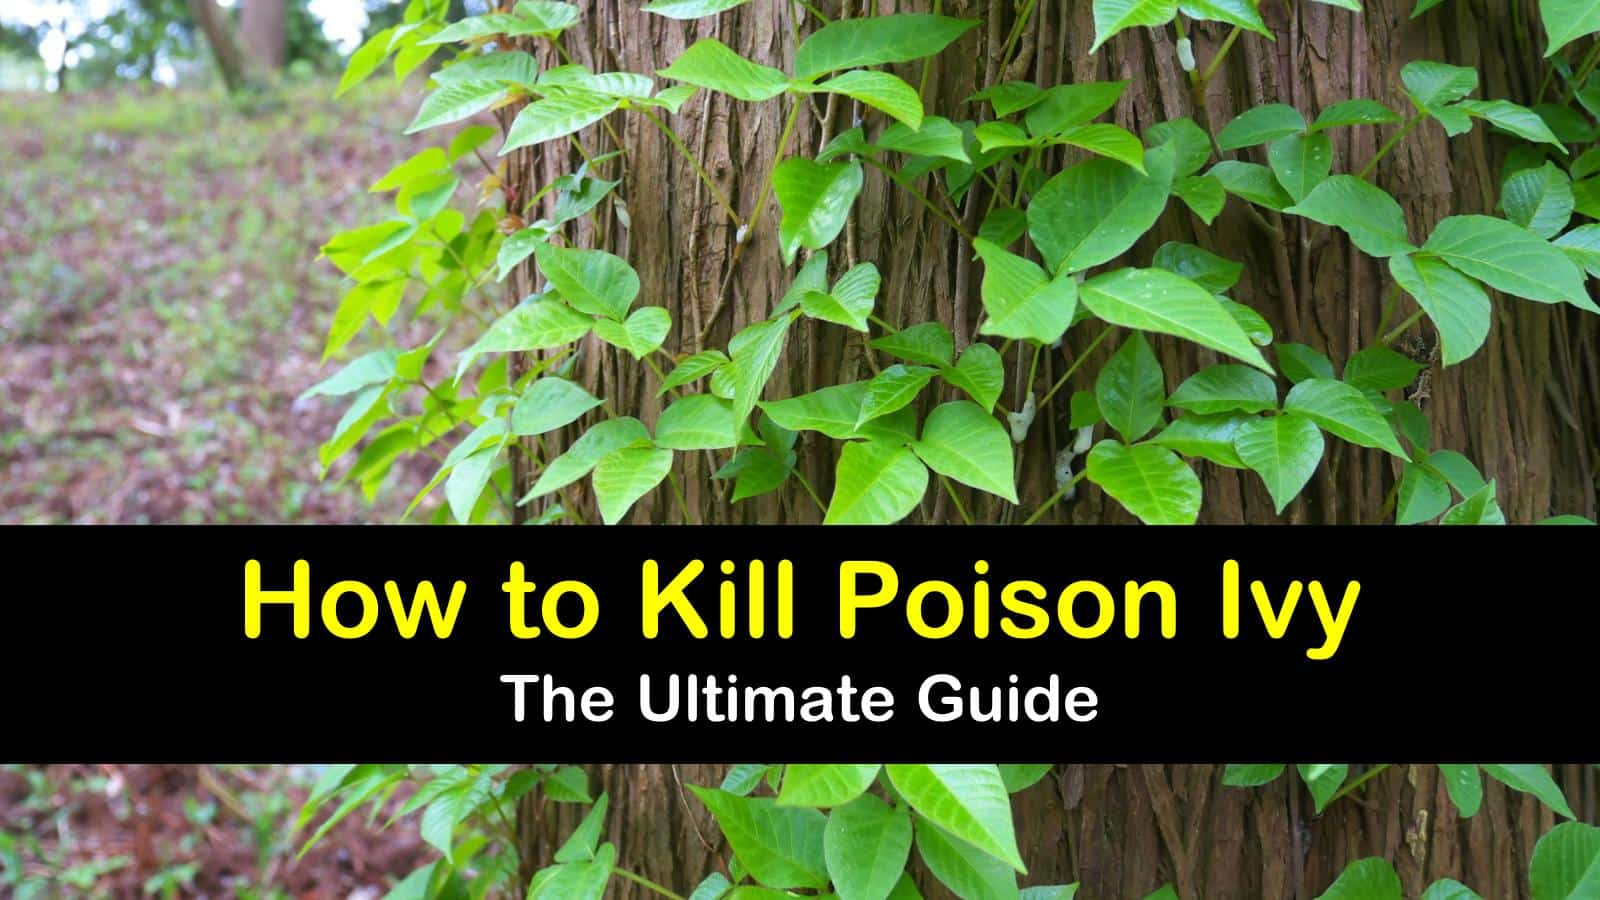 The Ultimate Guide To Kill Poison Ivy